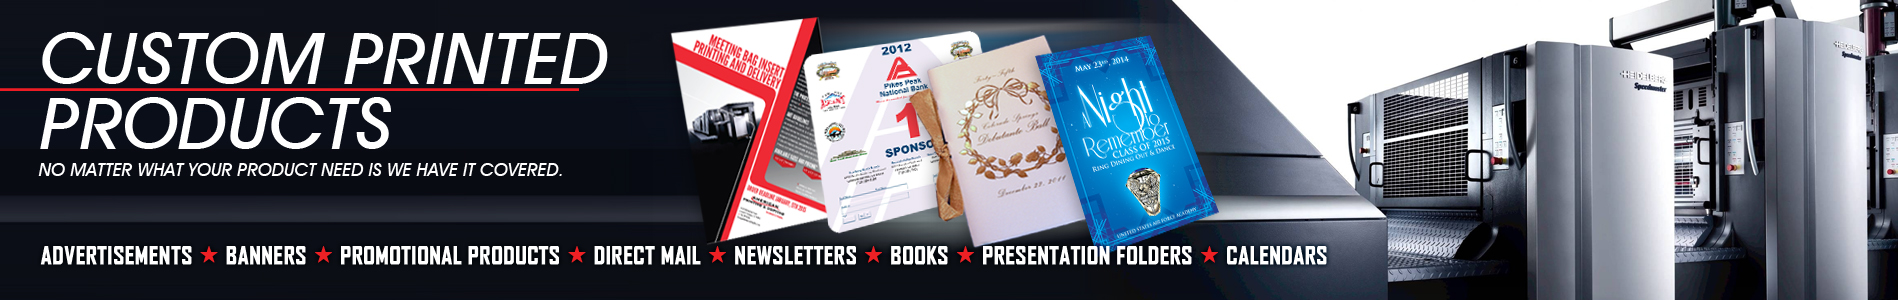 Custom Printed Projects - Advertisements | Banners | Promotional Products | Direct Mail | Newsletters | Books | Presentation Folders | Calendars